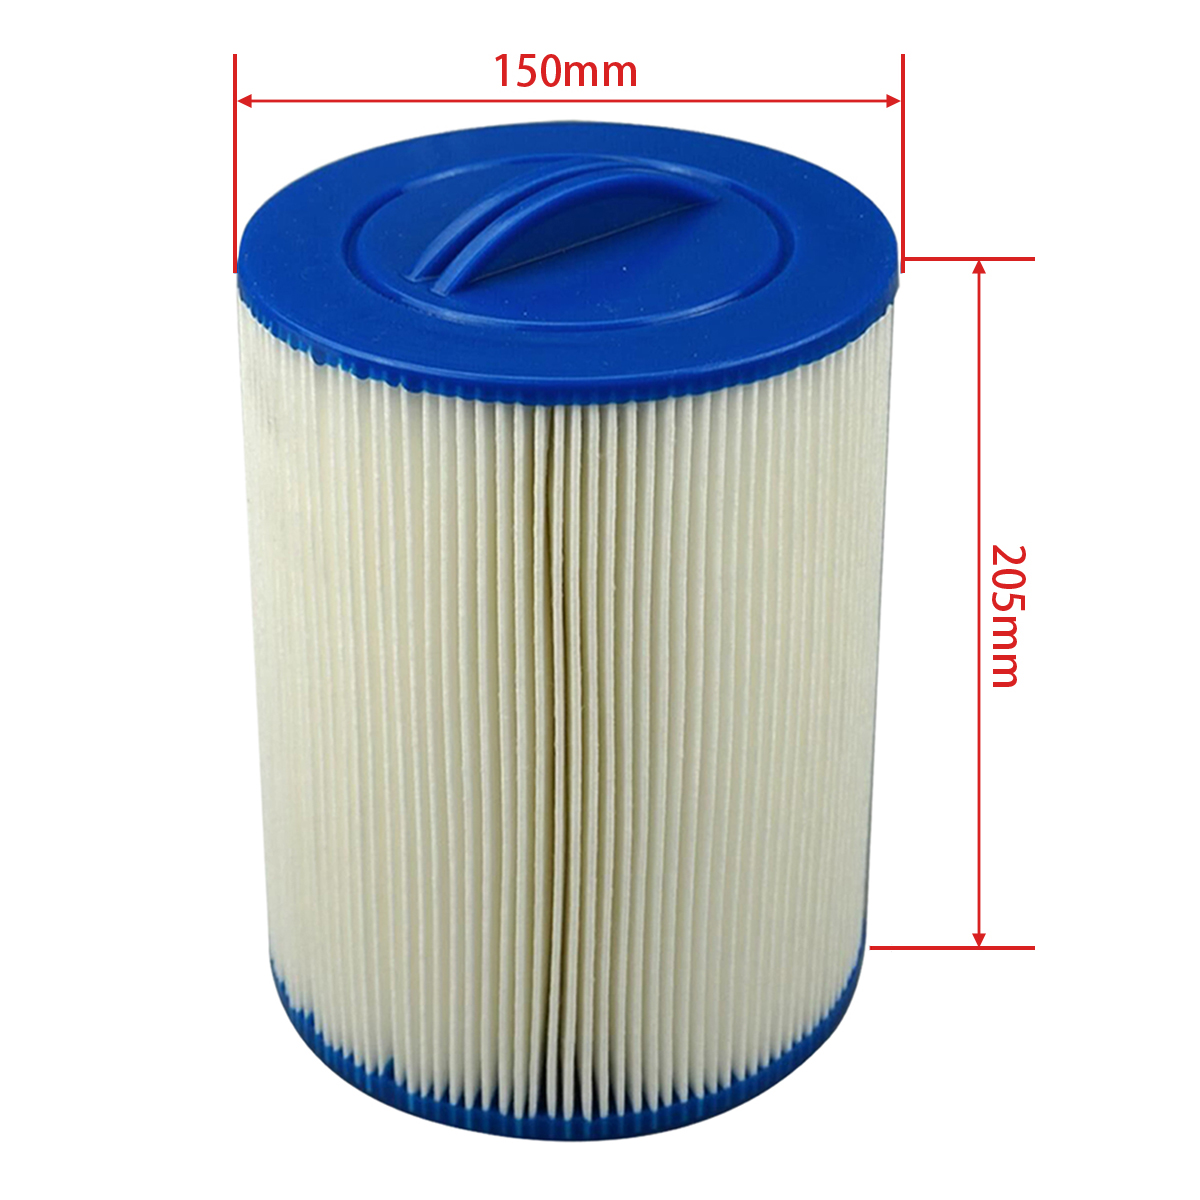 2pcs spa filter element Unicel 6CH 940 Pleatco PWW50 205mmx150mm with38mm hole hot tub filter cartridge